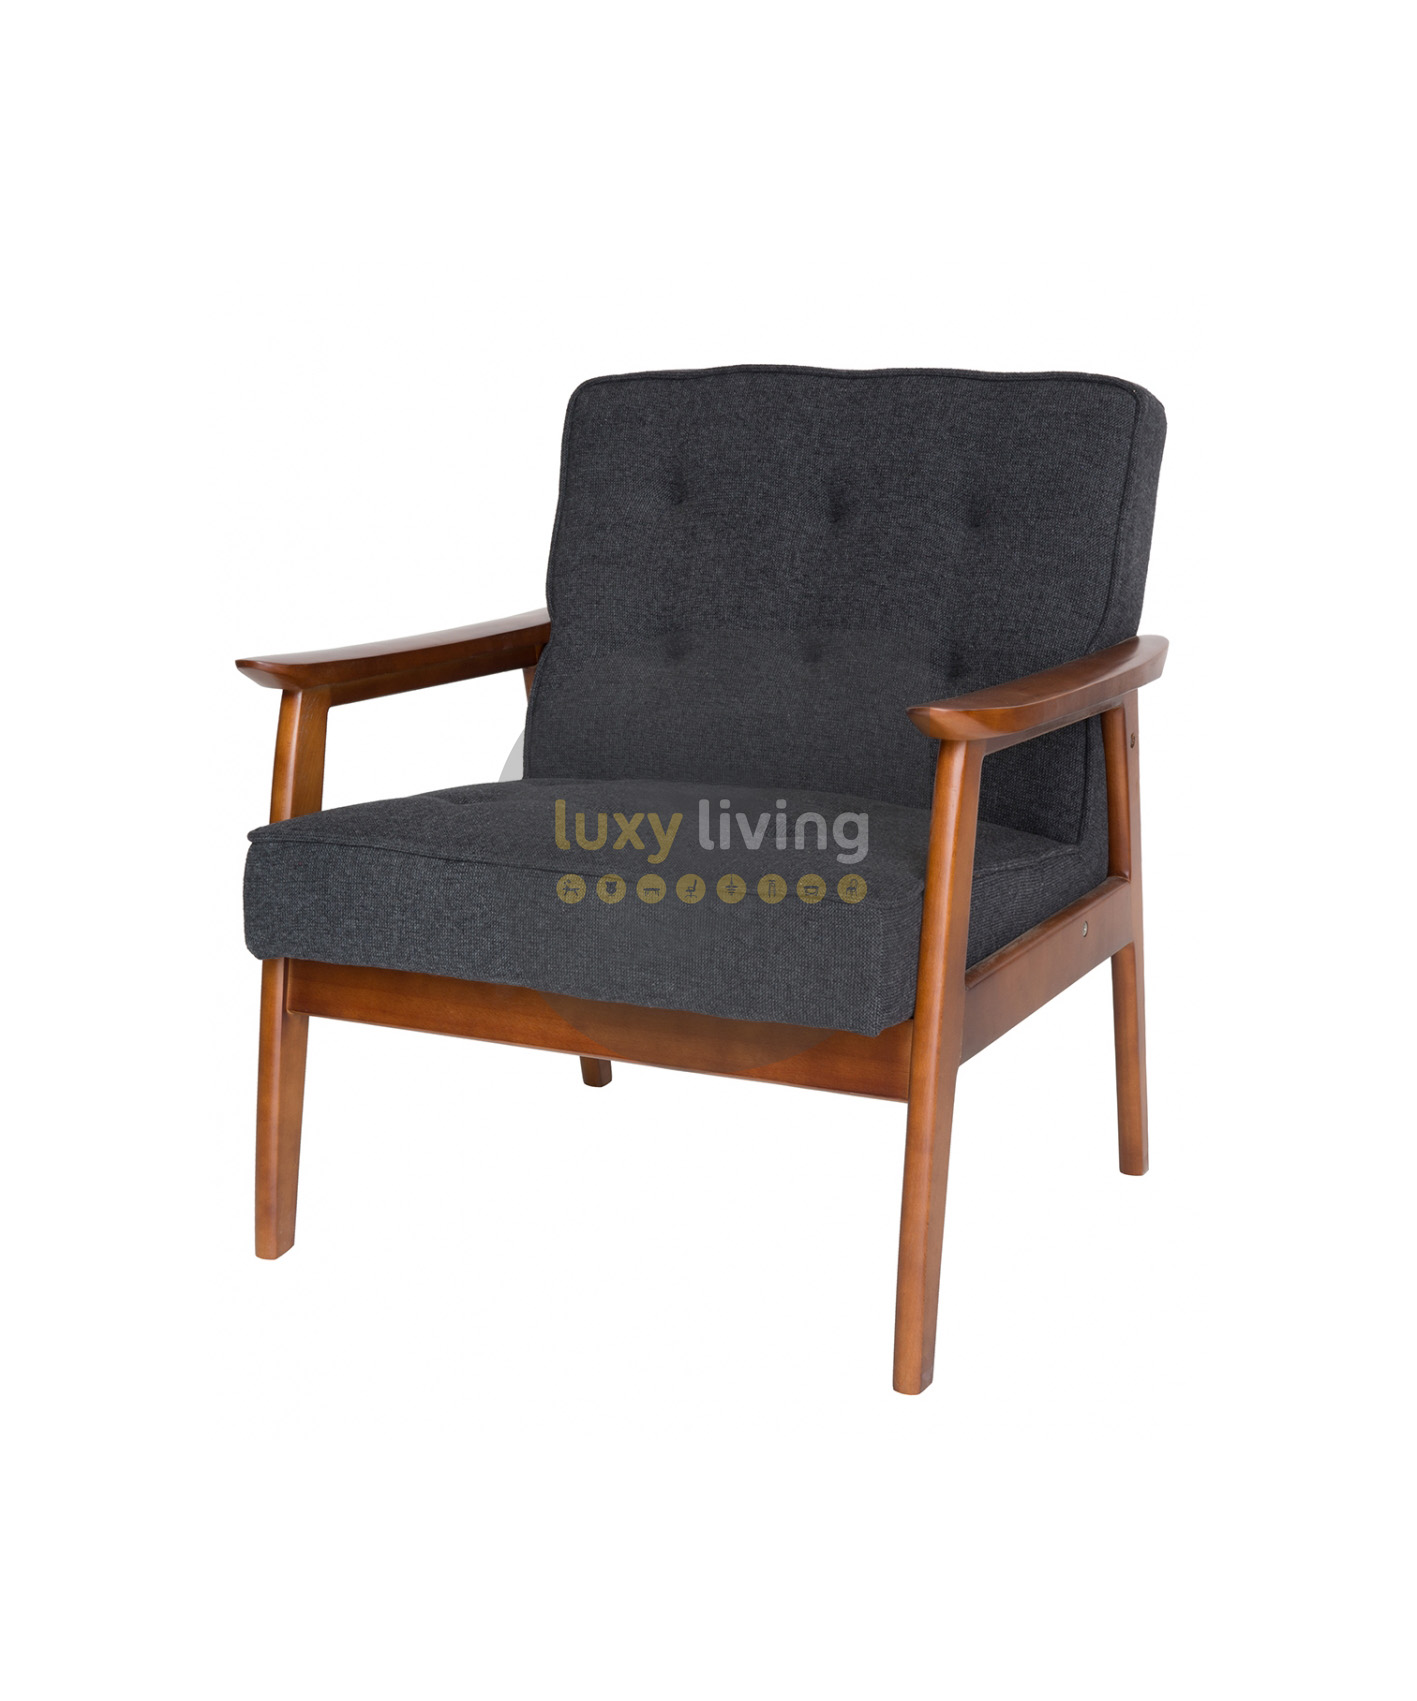 replica hans wegner plank arm chair grey charcoal fabric